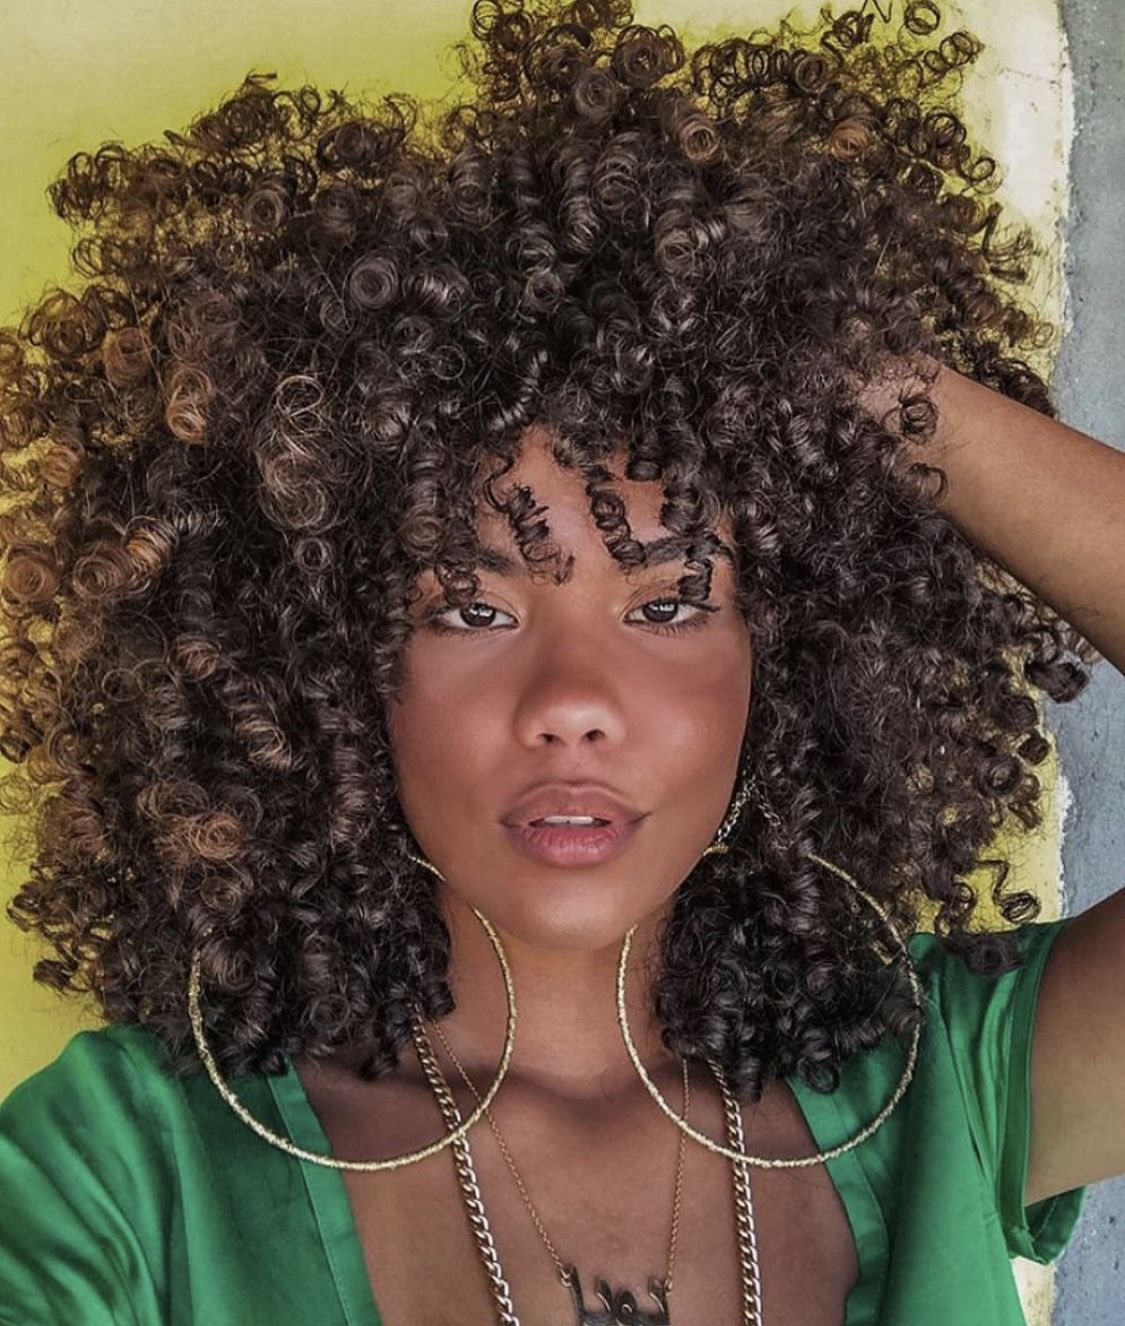 Pin By Celia Regina On Cabelos Crespos E Cacheados Natural Hair Styles Curly Hair Styles Hair Beauty